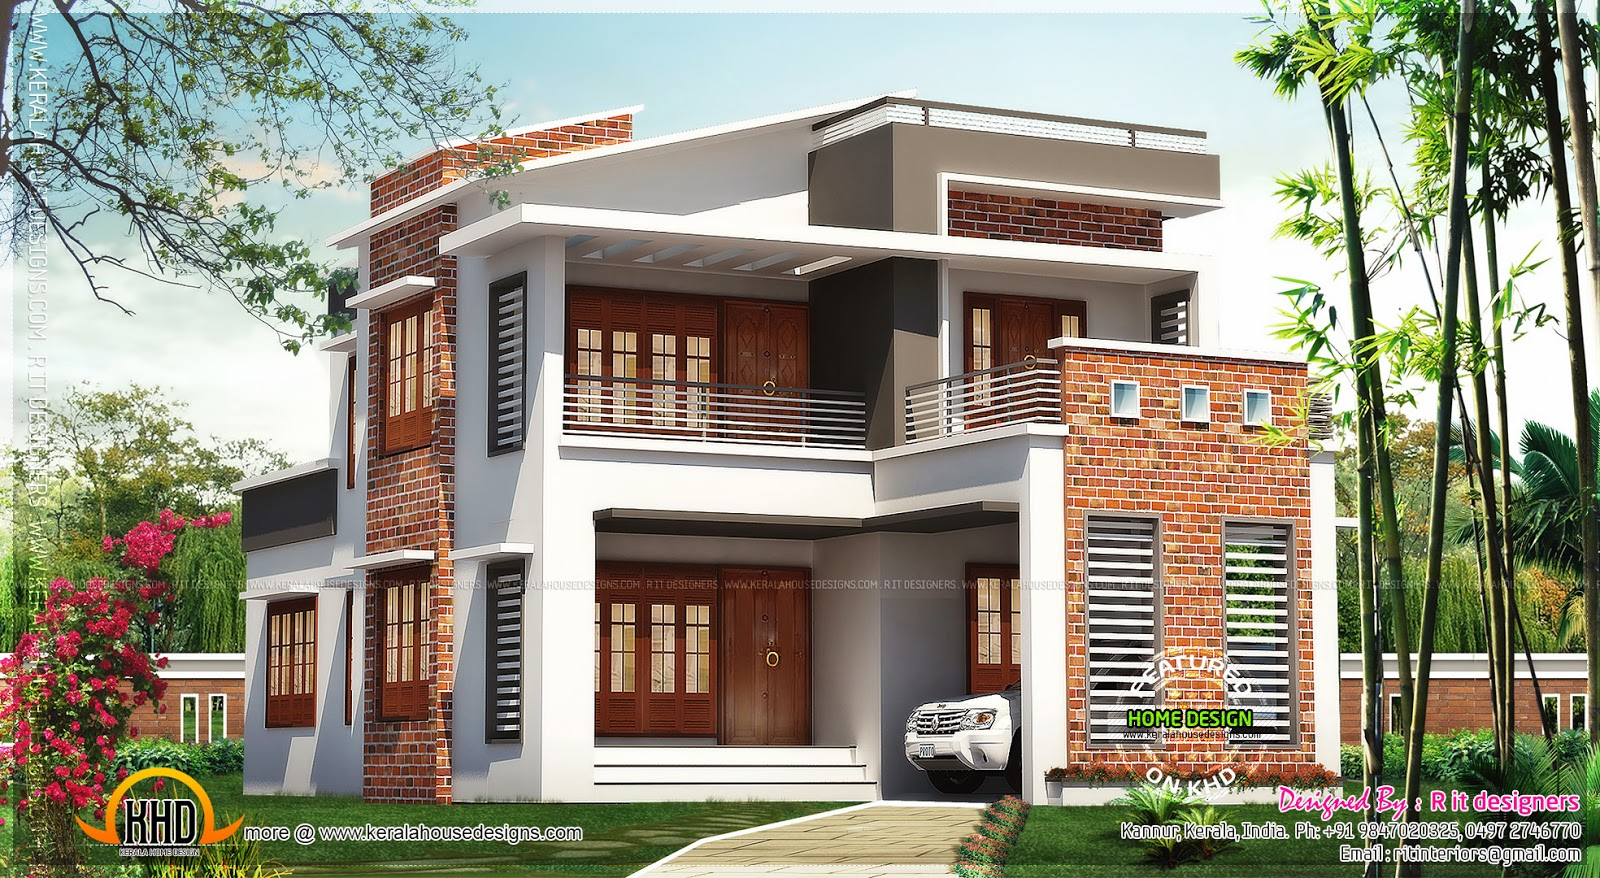 Brick mix house exterior design kerala home design and for Outside design for home